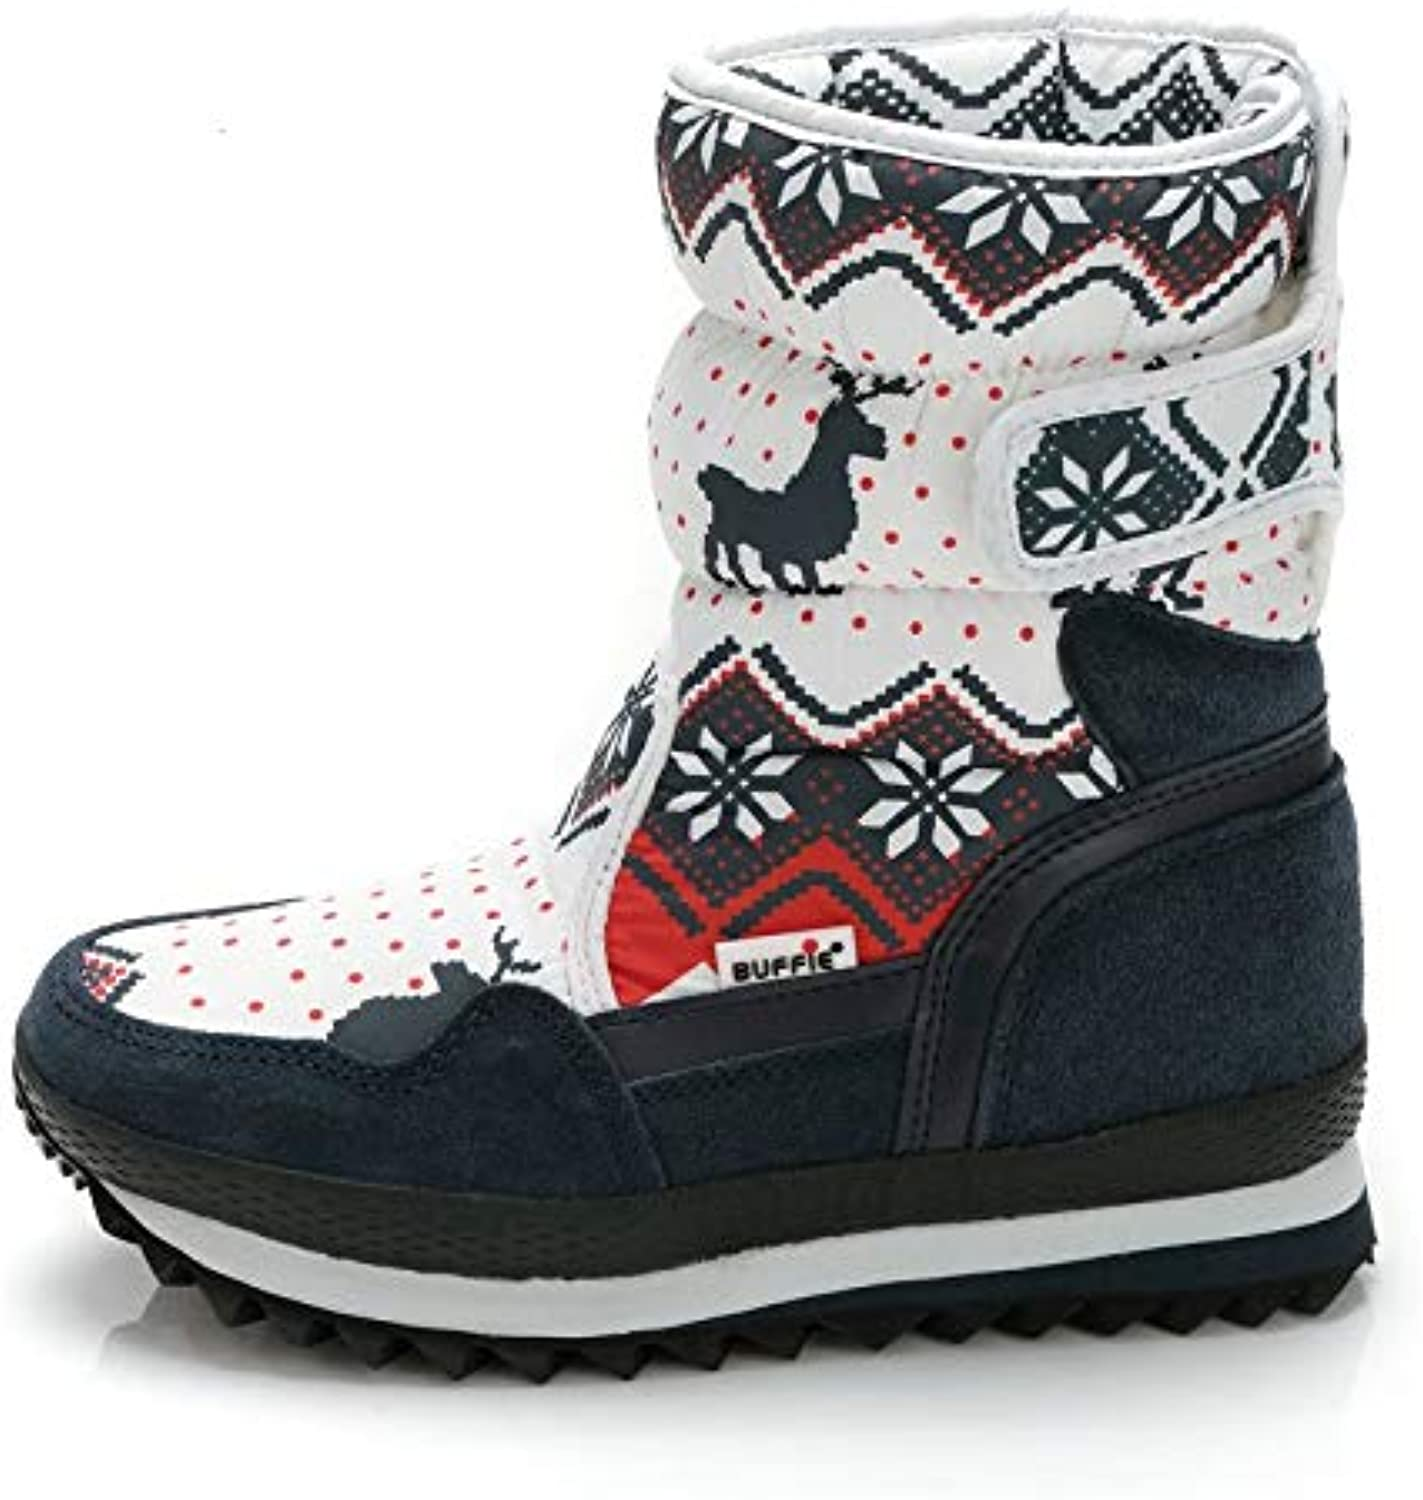 Wasab Snow Boots for Women Girls Boys Christmas Deer Snow Boots Ankle Non-Slip Waterproof Winter